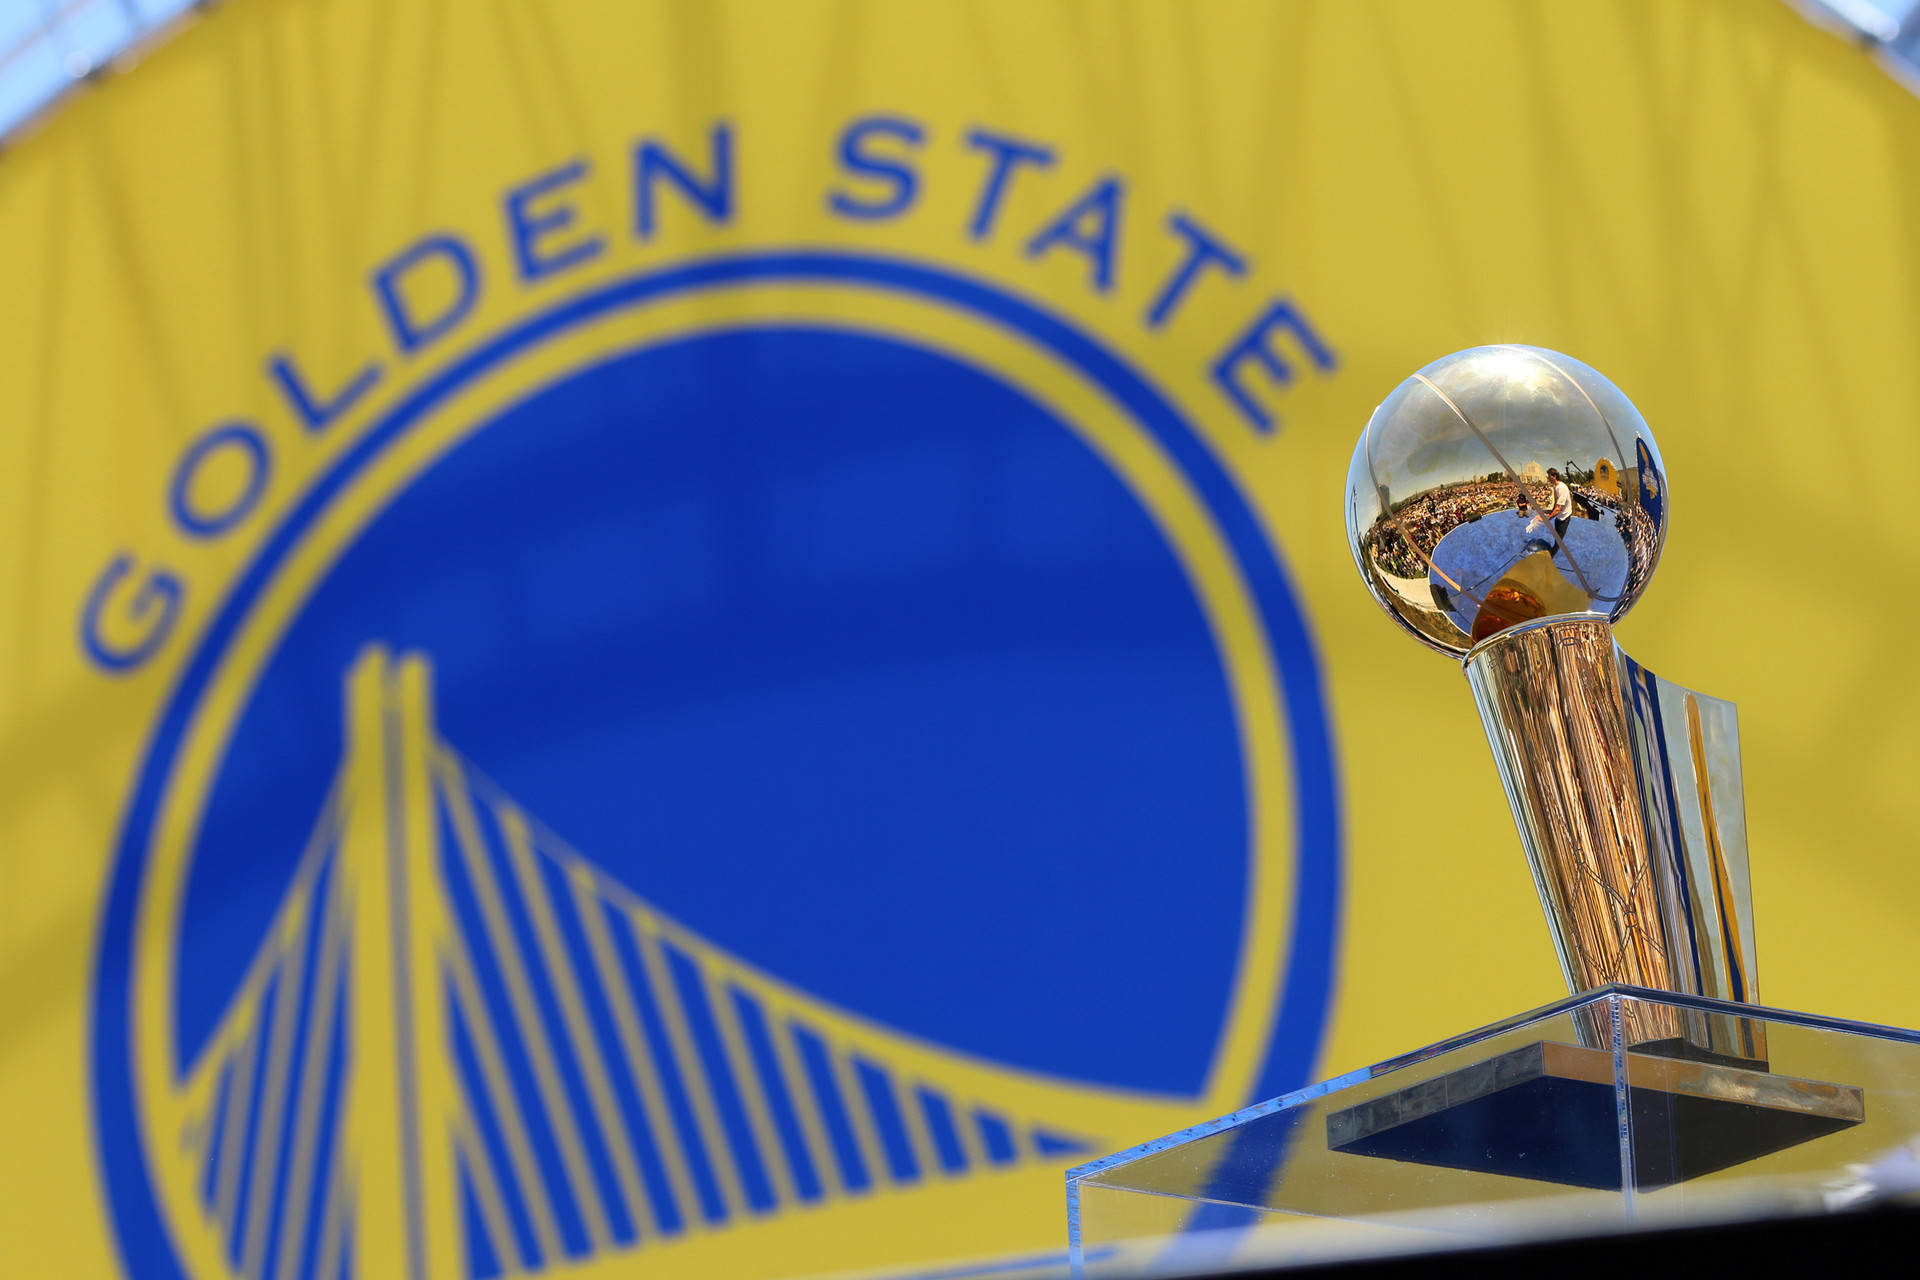 The Golden State Warriors are the only team in the NBA with a name that doesn't include a city or state. Adam Grossberg/KQED